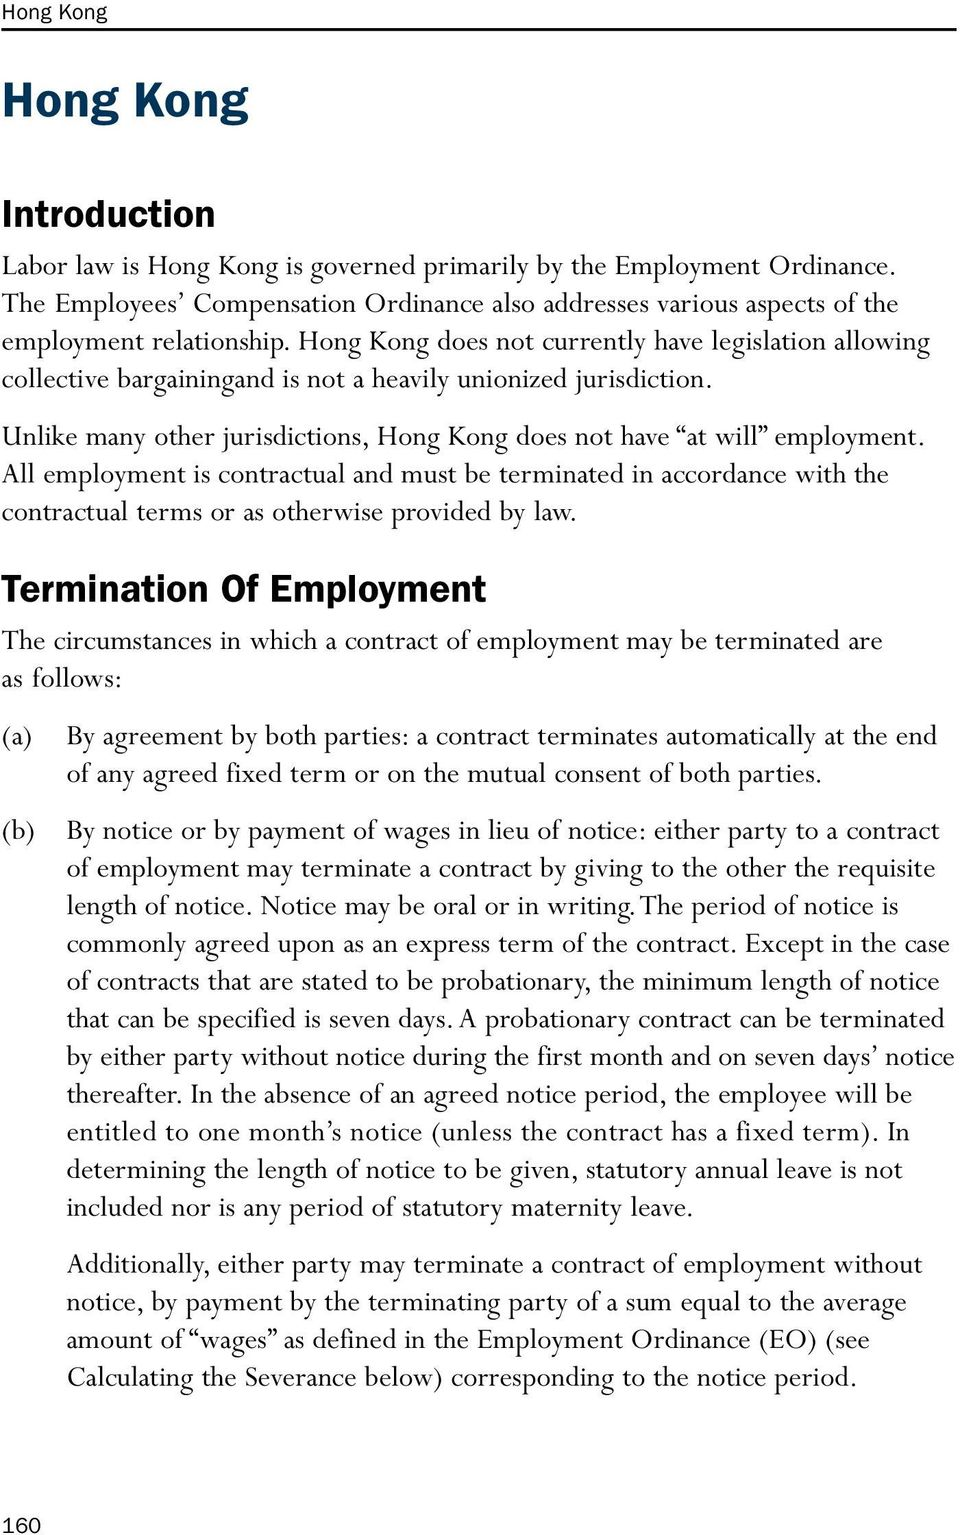 Hong Kong does not currently have legislation allowing collective bargainingand is not a heavily unionized jurisdiction. Unlike many other jurisdictions, Hong Kong does not have at will employment.